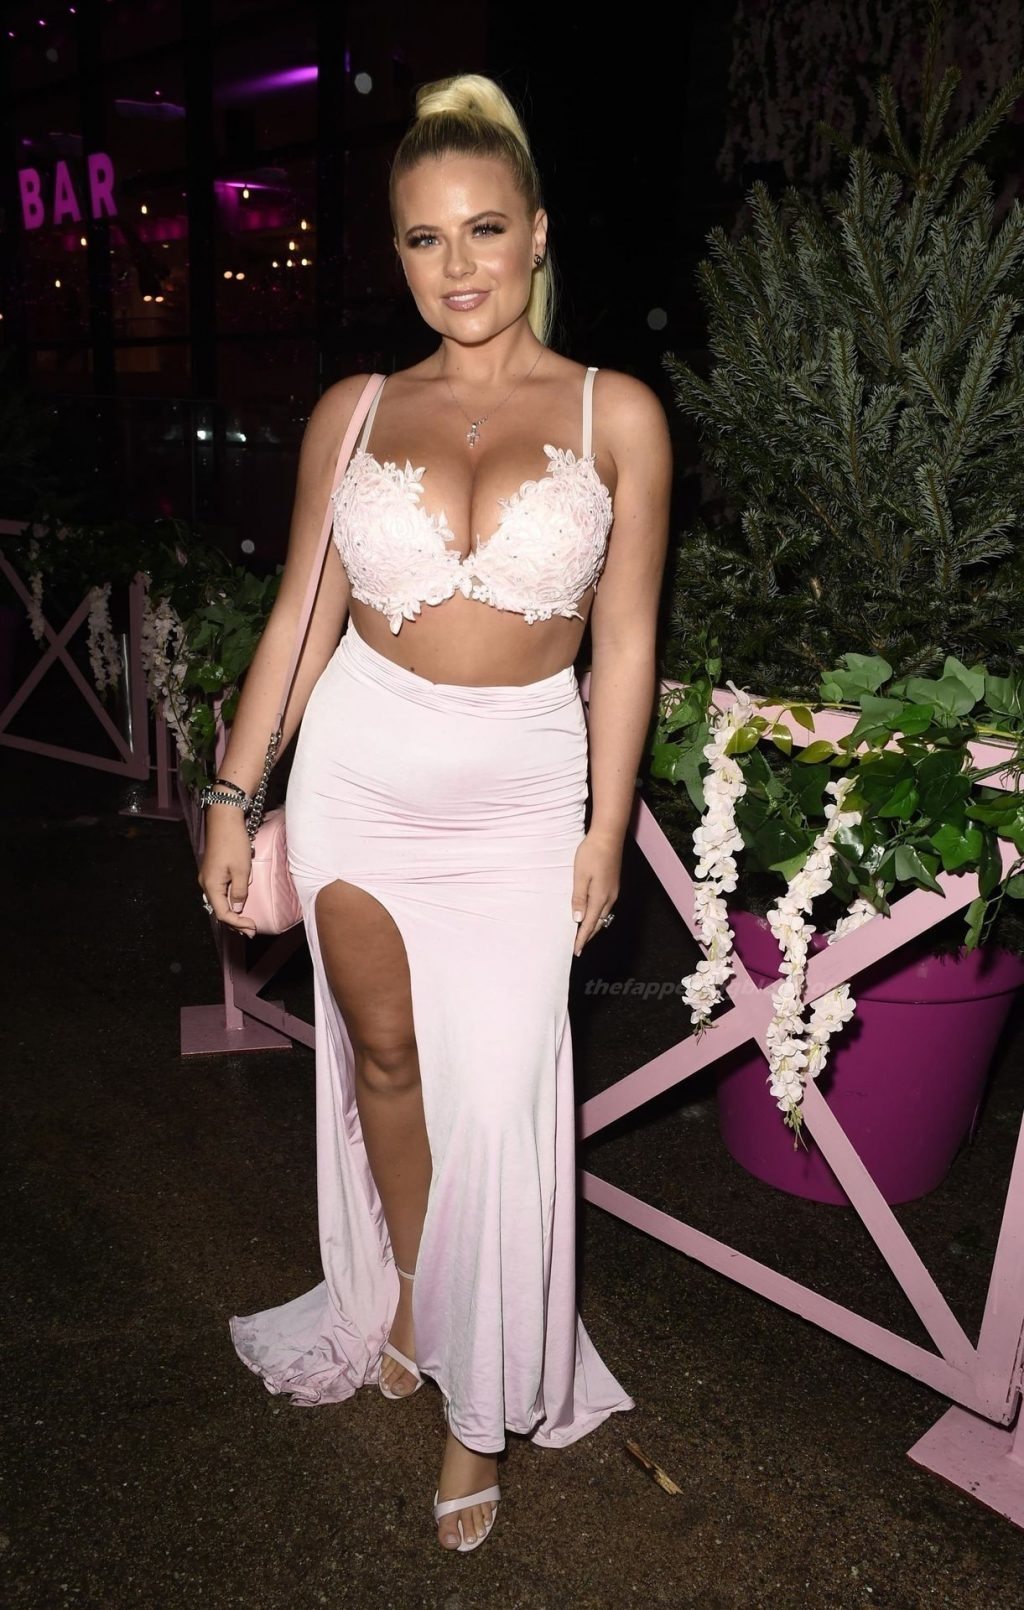 Apollonia Llewellyn Shows Off Her Boobs at the Event in Liverpool (15 Photos)